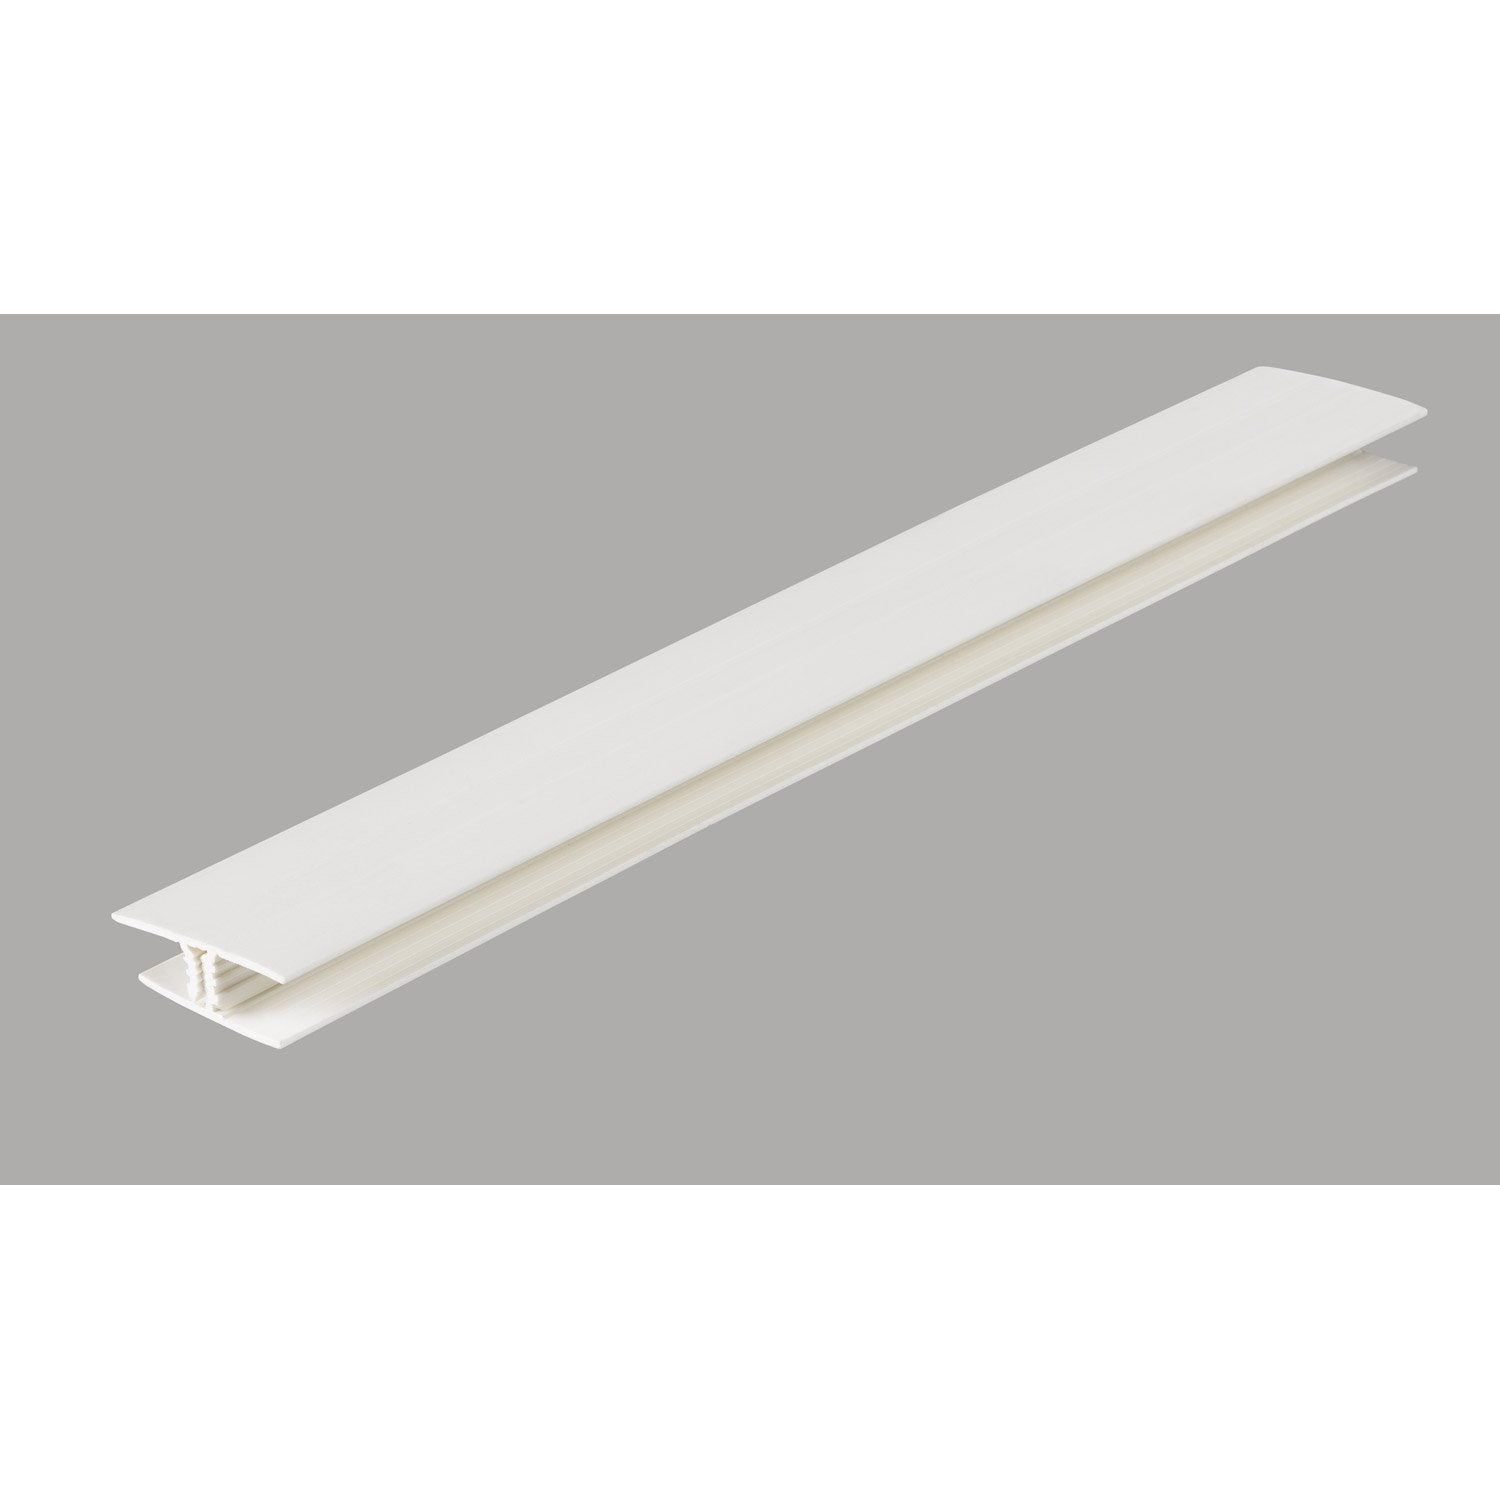 Profil de finition pour lambris pvc 5 5 x 1 2 cm l 2 6 m leroy merlin - Pose de lambris pvc au plafond video ...